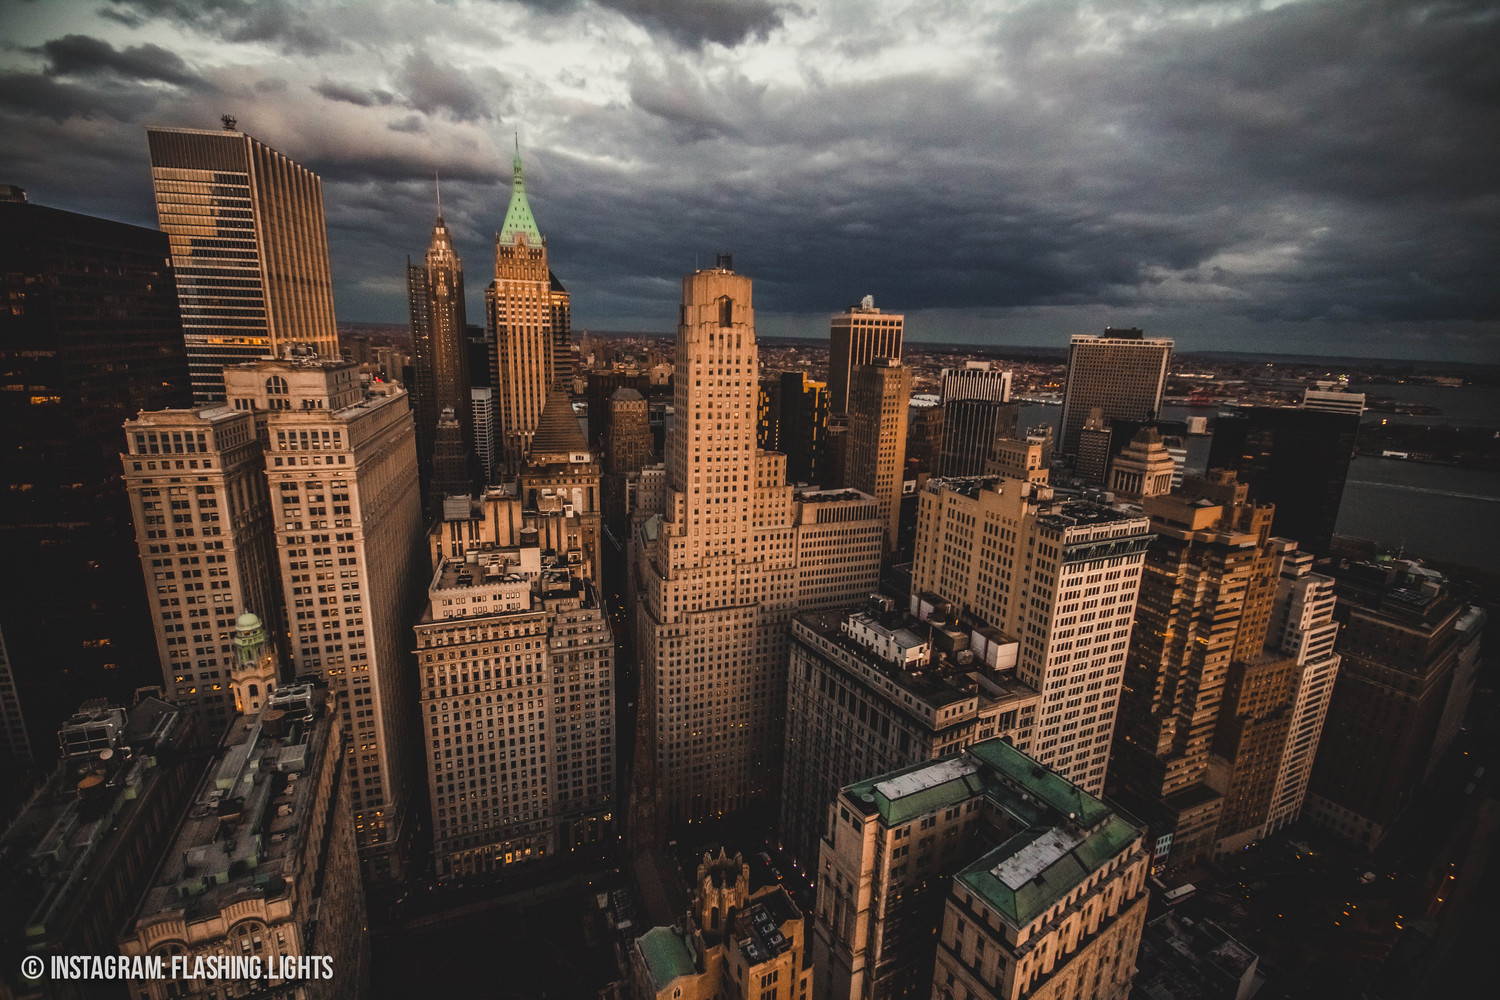 A storm is brewing over the financial district.